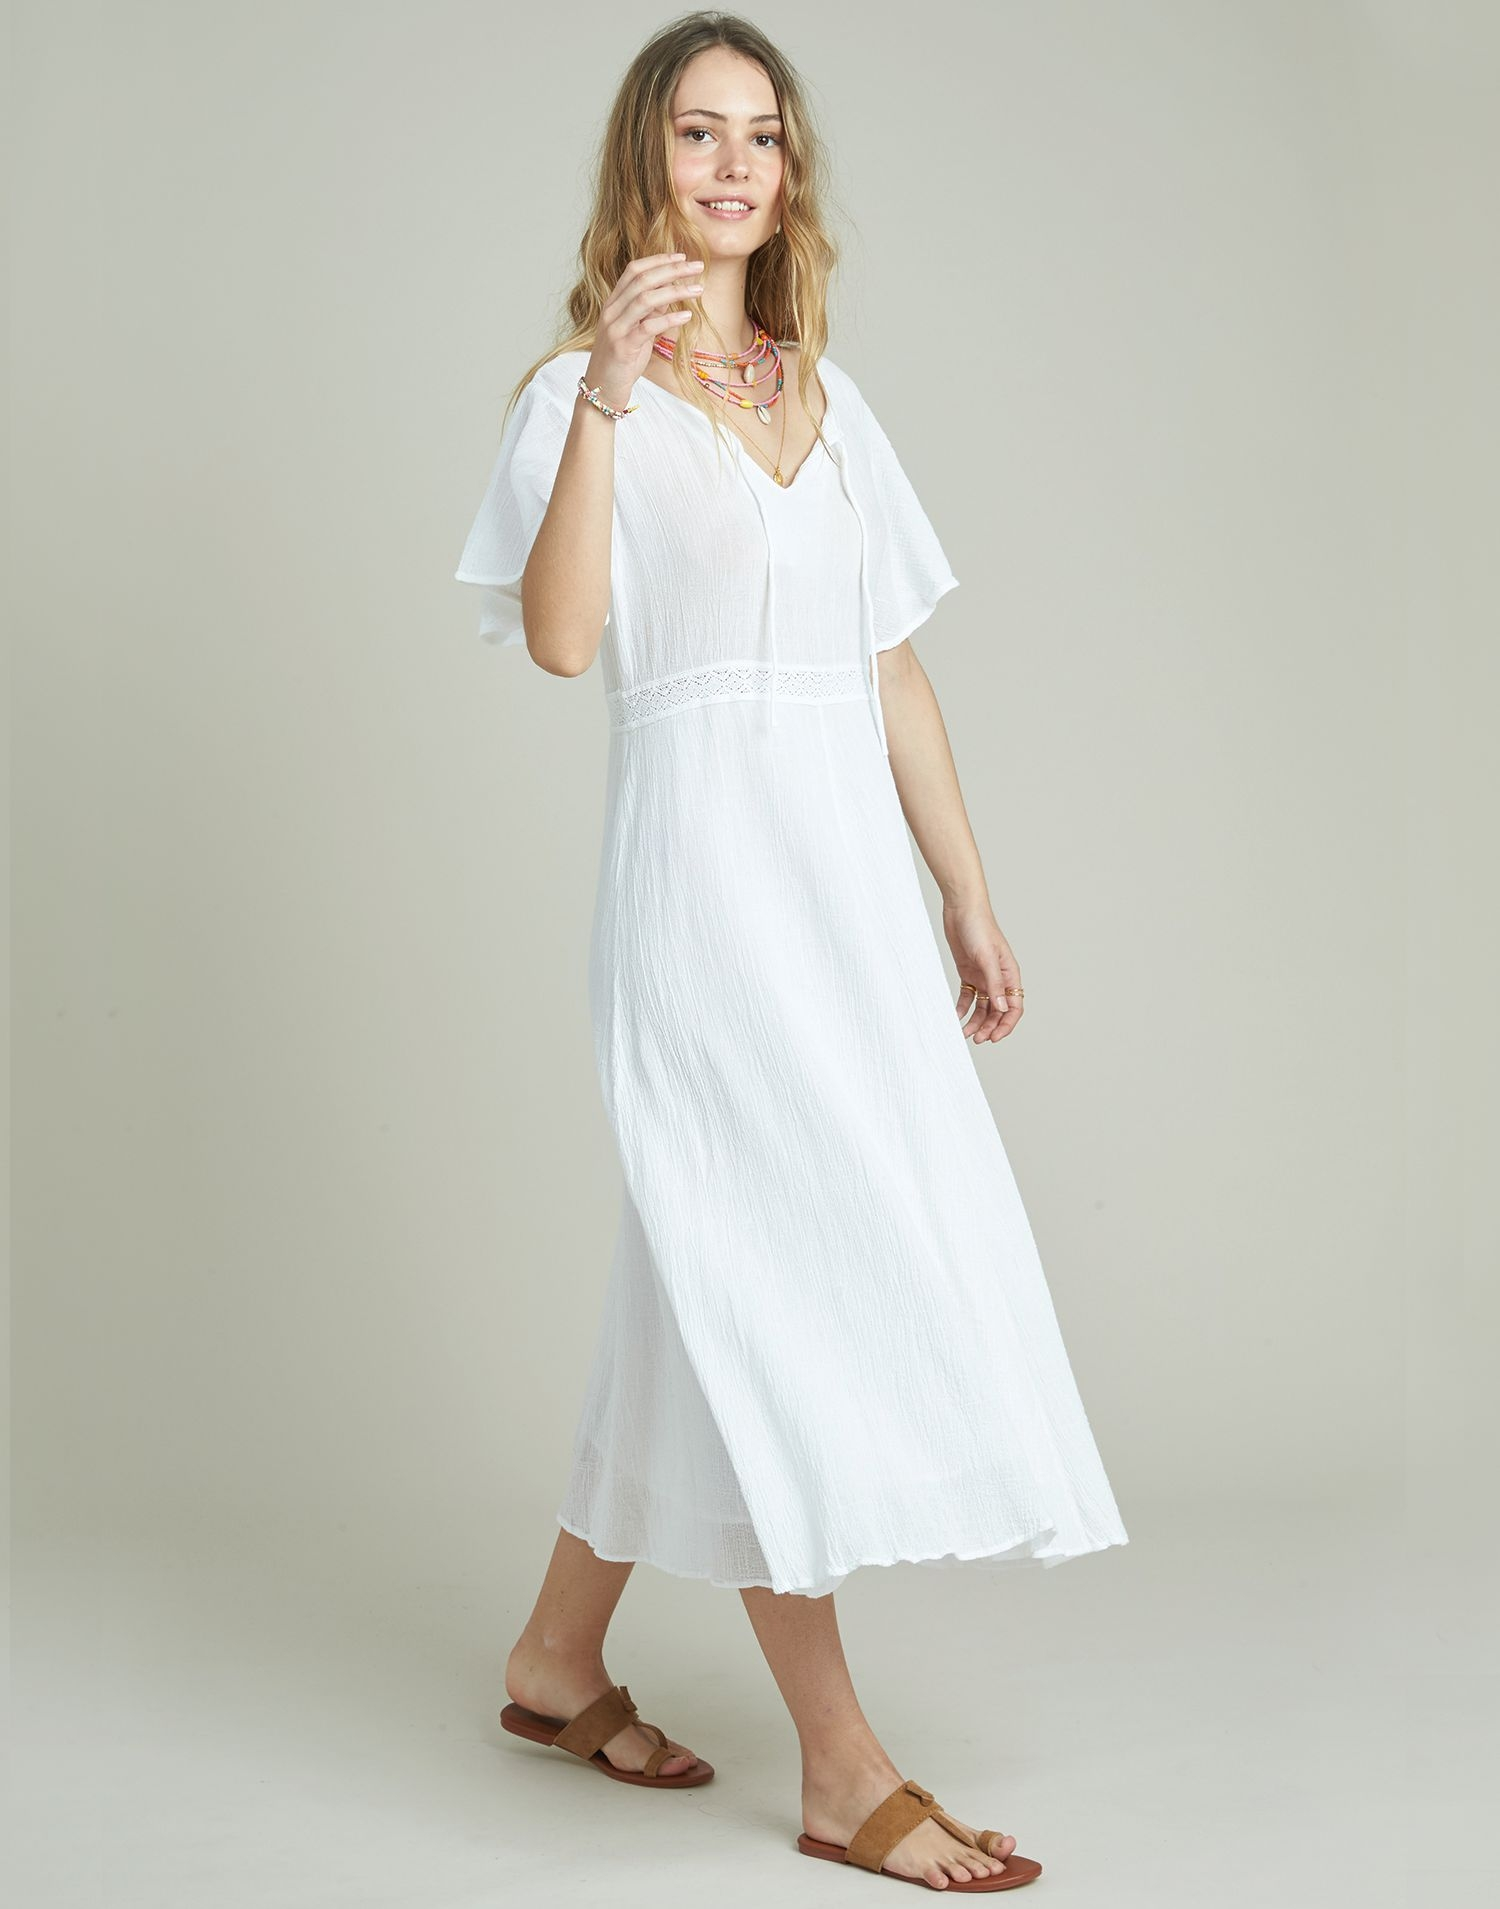 Midi dress with lace at waist